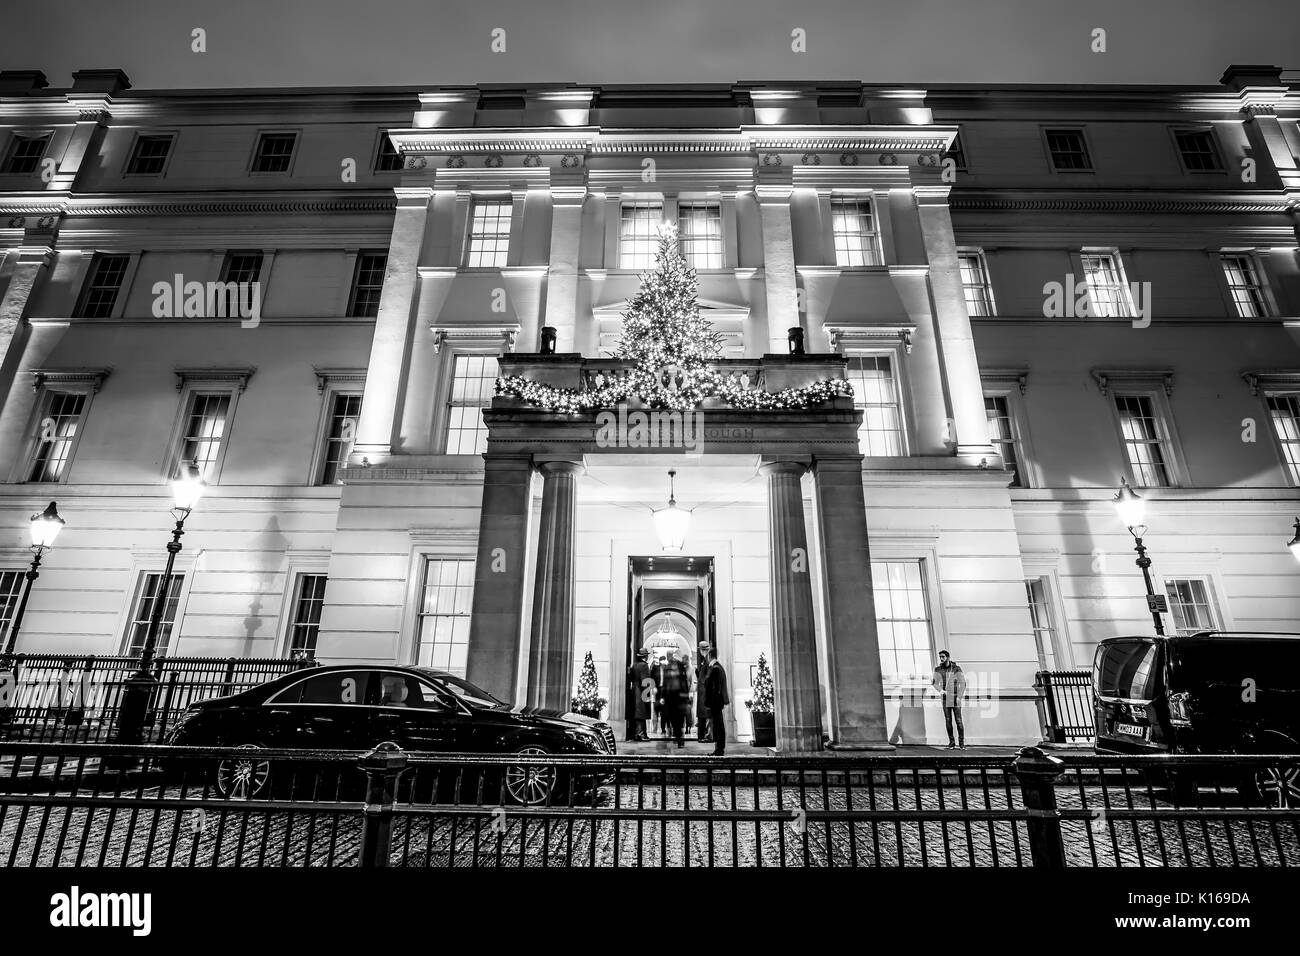 Main Entrance of Lanesborough hotel in London - LONDON / ENGLAND - DECEMBER 6, 2017 - Stock Image